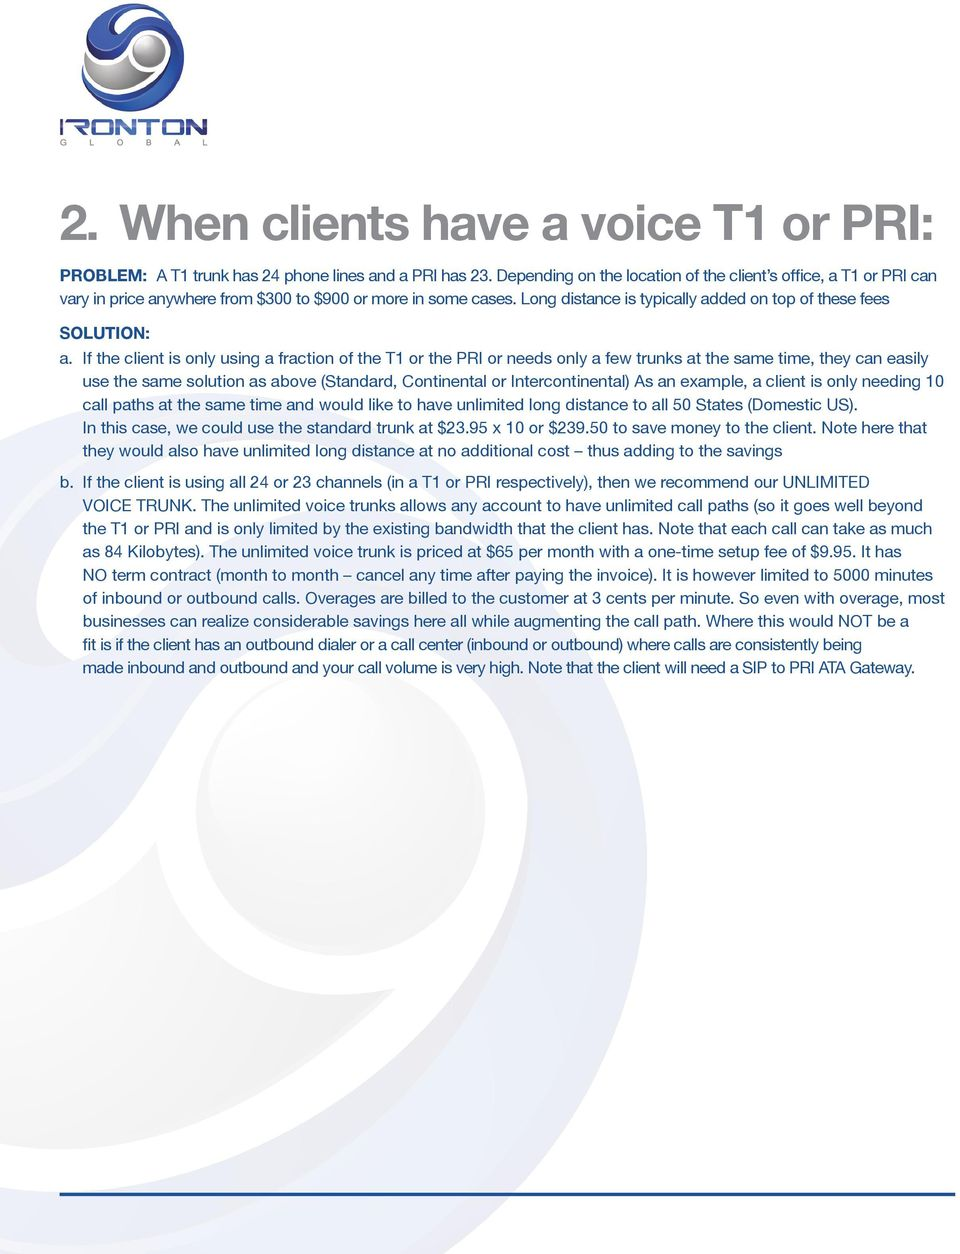 If the client is only using a fraction of the T1 or the PRI or needs only a few trunks at the same time, they can easily use the same solution as above (Standard, Continental or Intercontinental) As